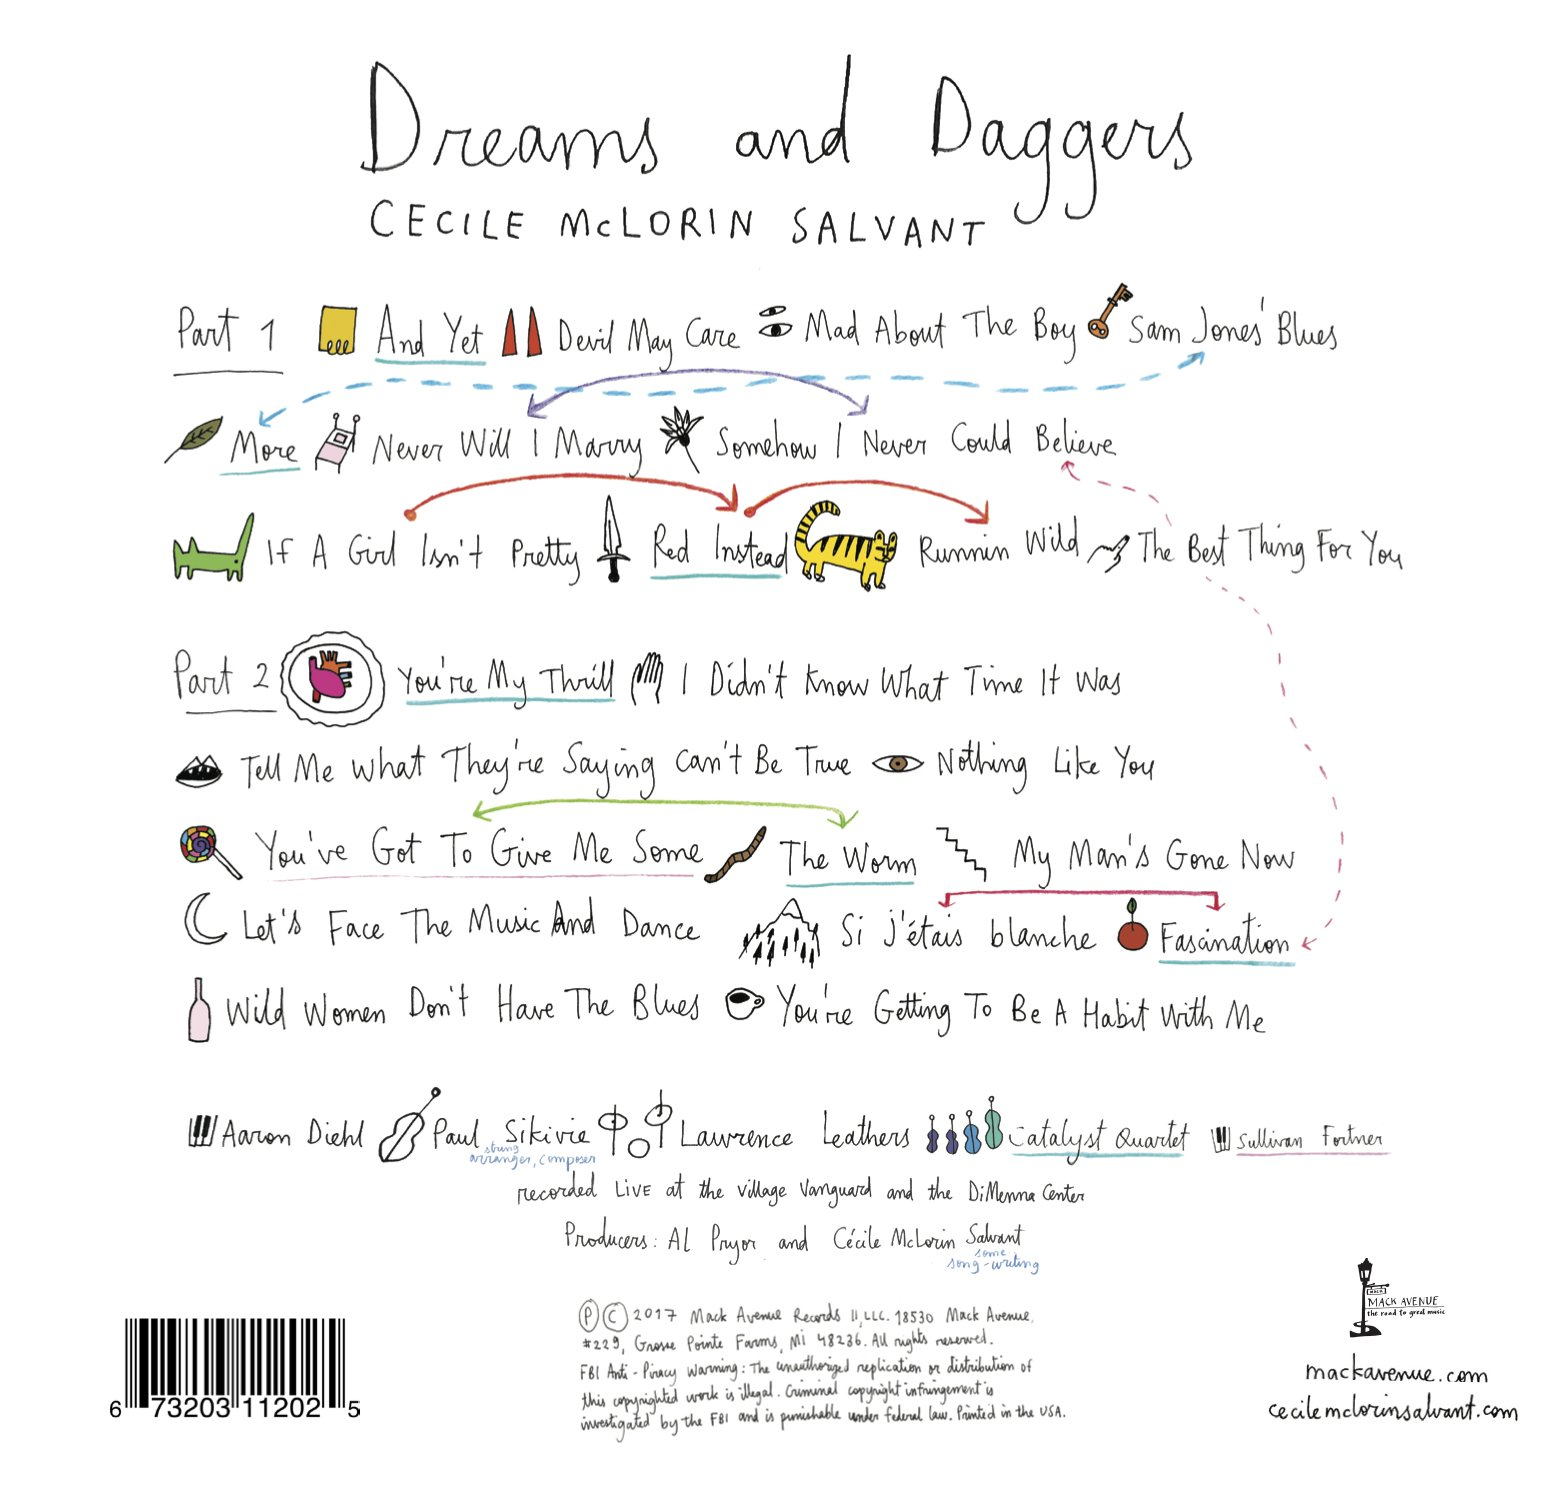 Dreams and Daggers - 2 CD set